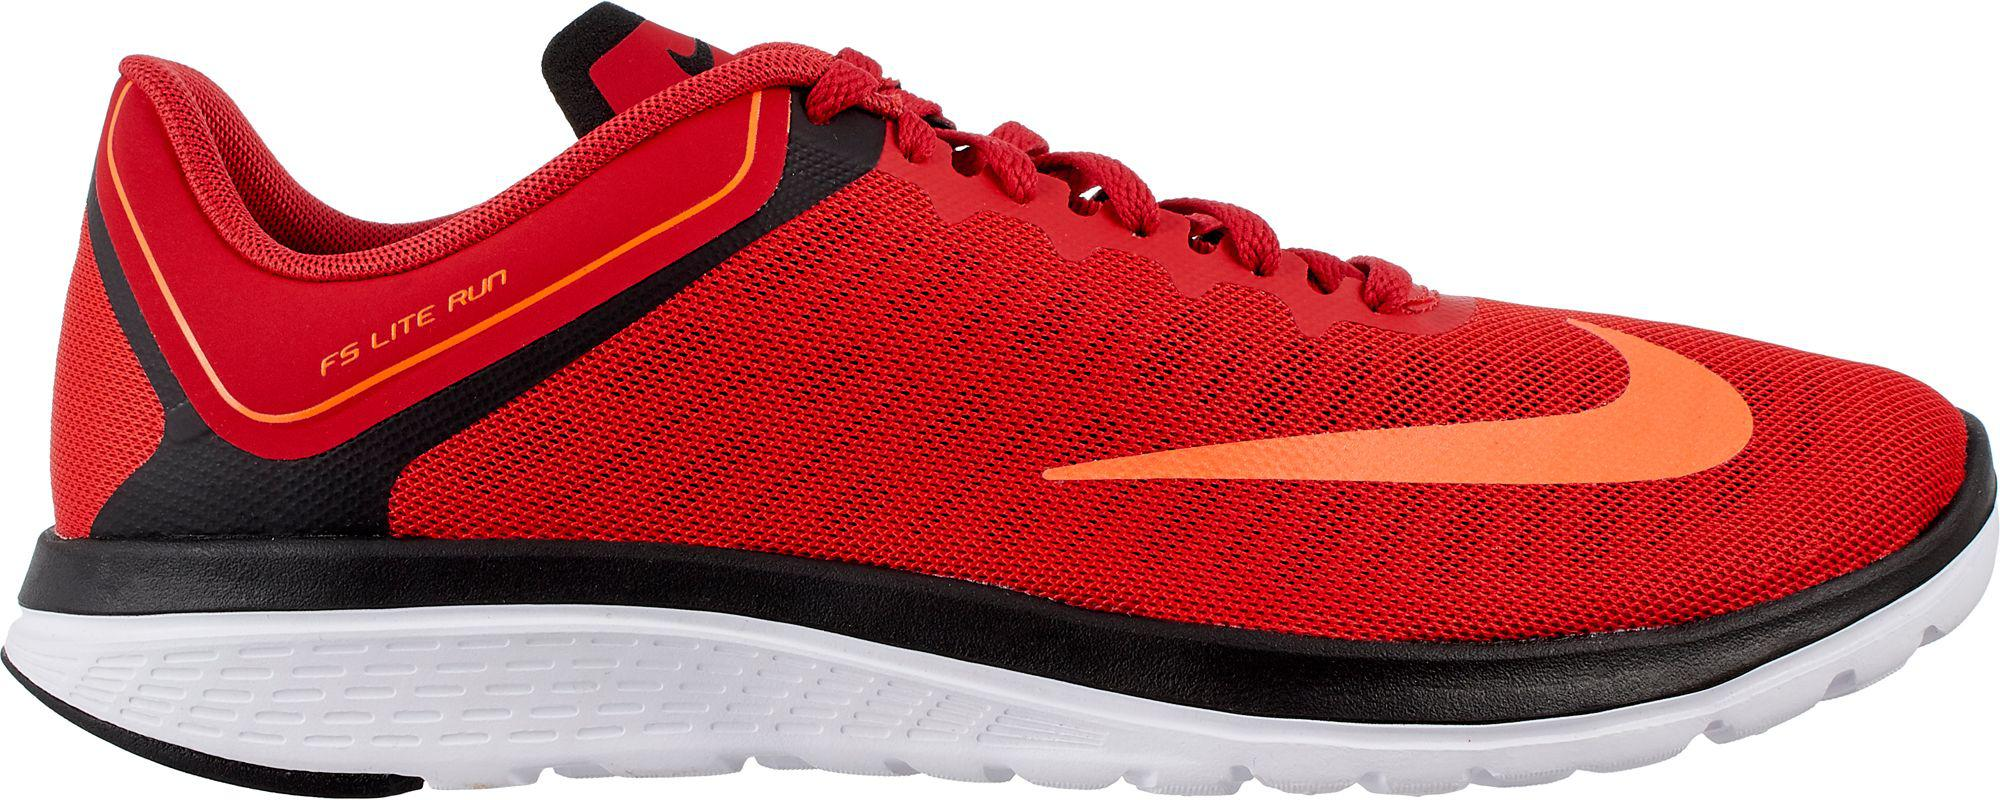 0f7c559bcd42 Lyst - Nike Fs Lite Run 4 Running Shoes in Red for Men